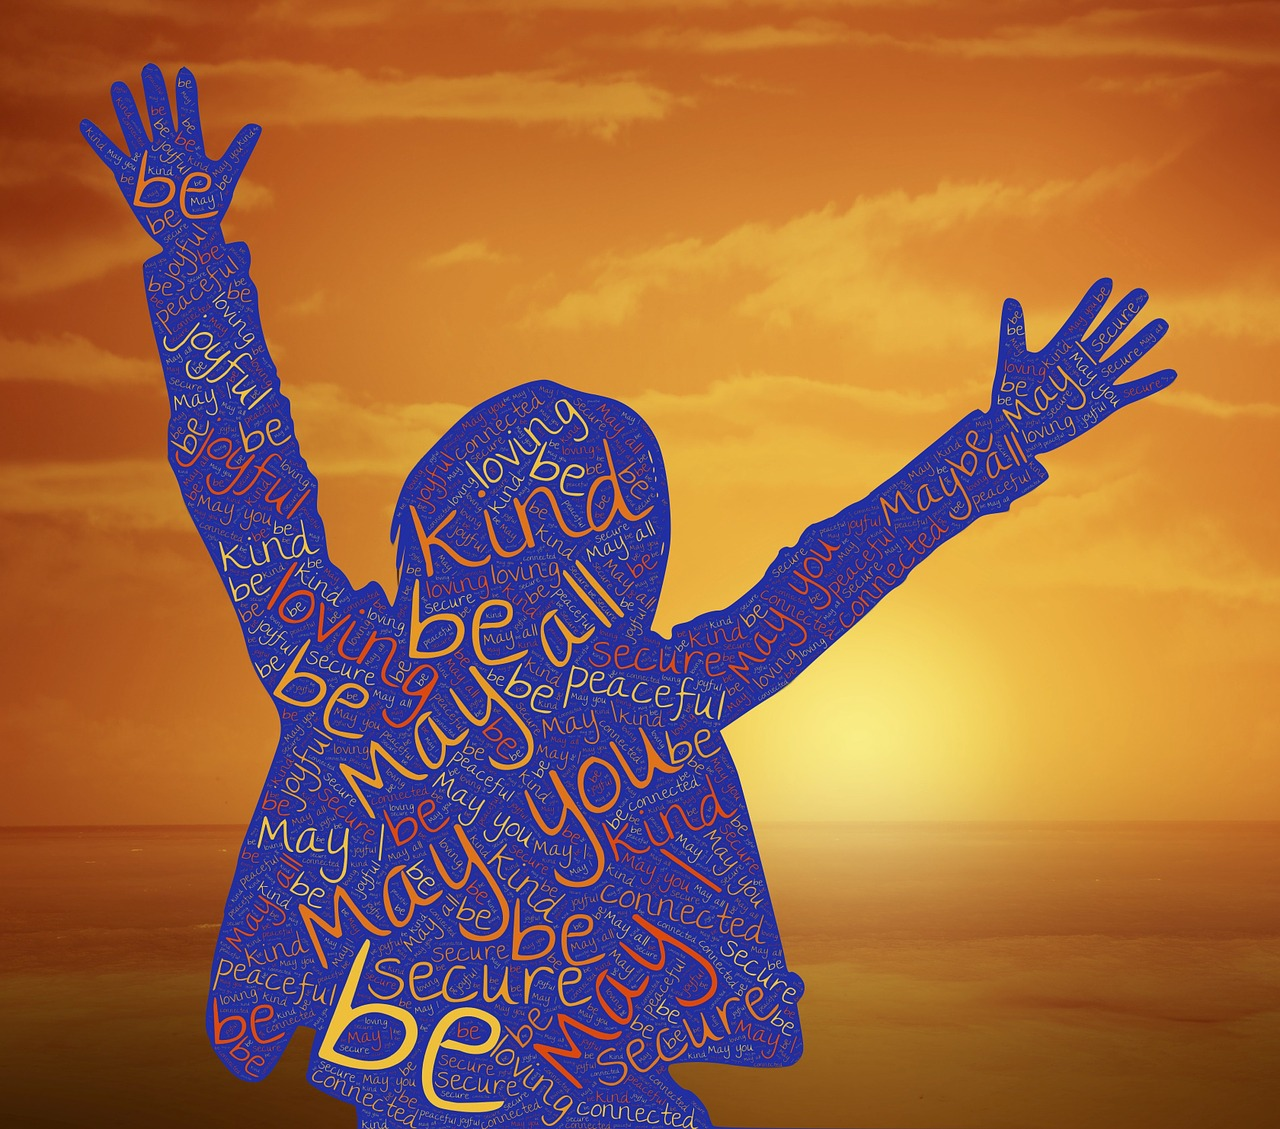 outline of person with words inside about kindness